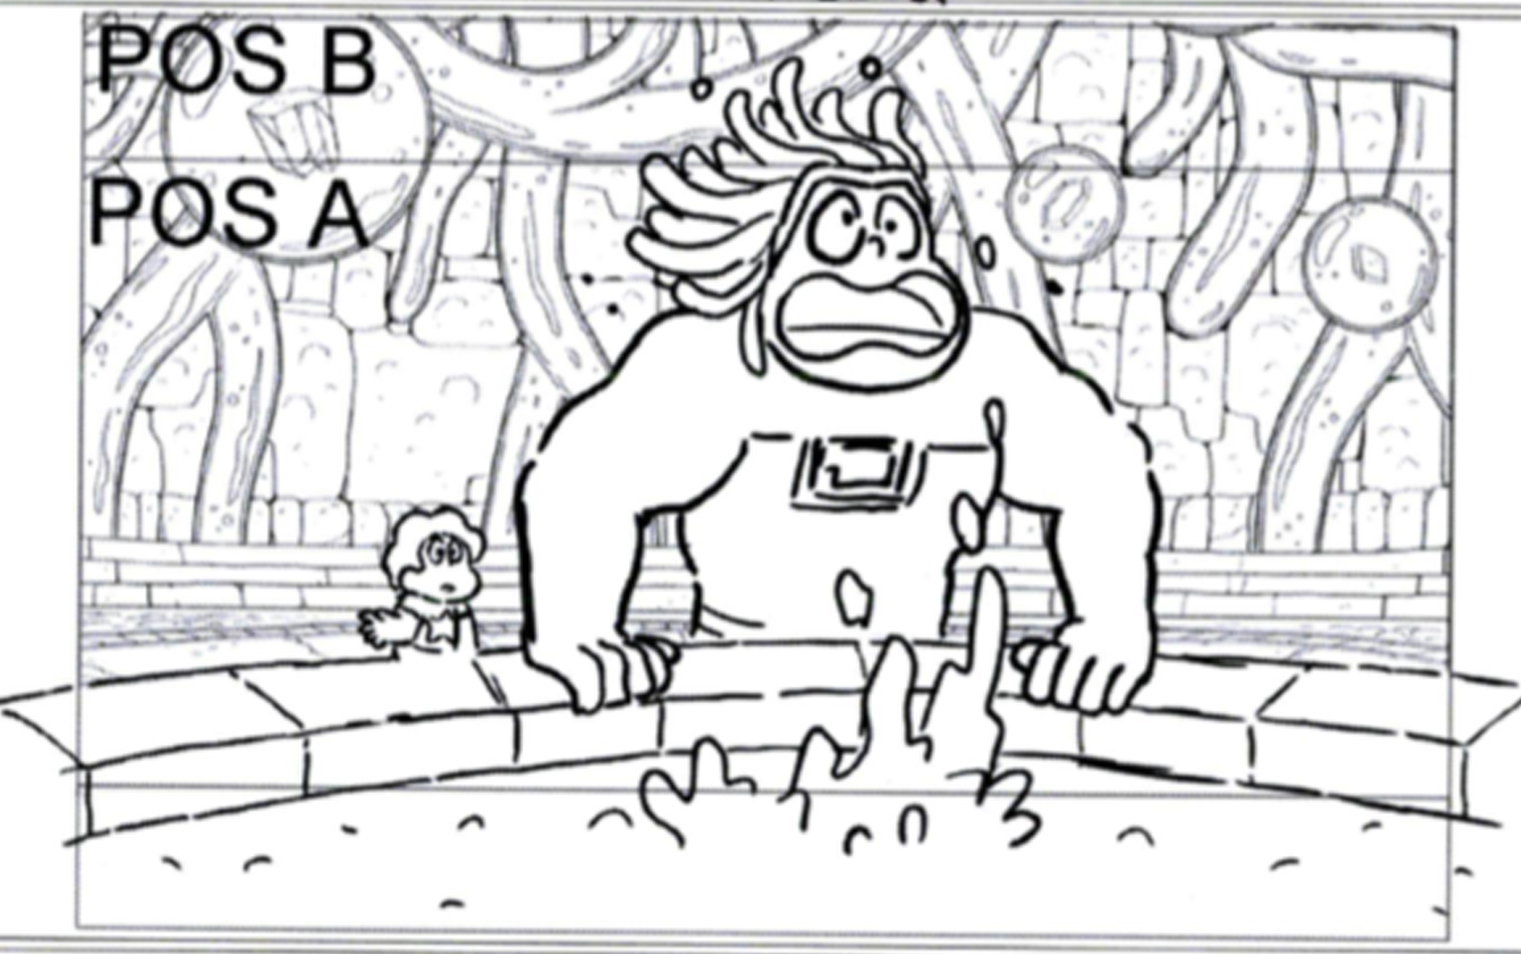 Storyboard panel from Steven Universe. Credit: Cartoon Network